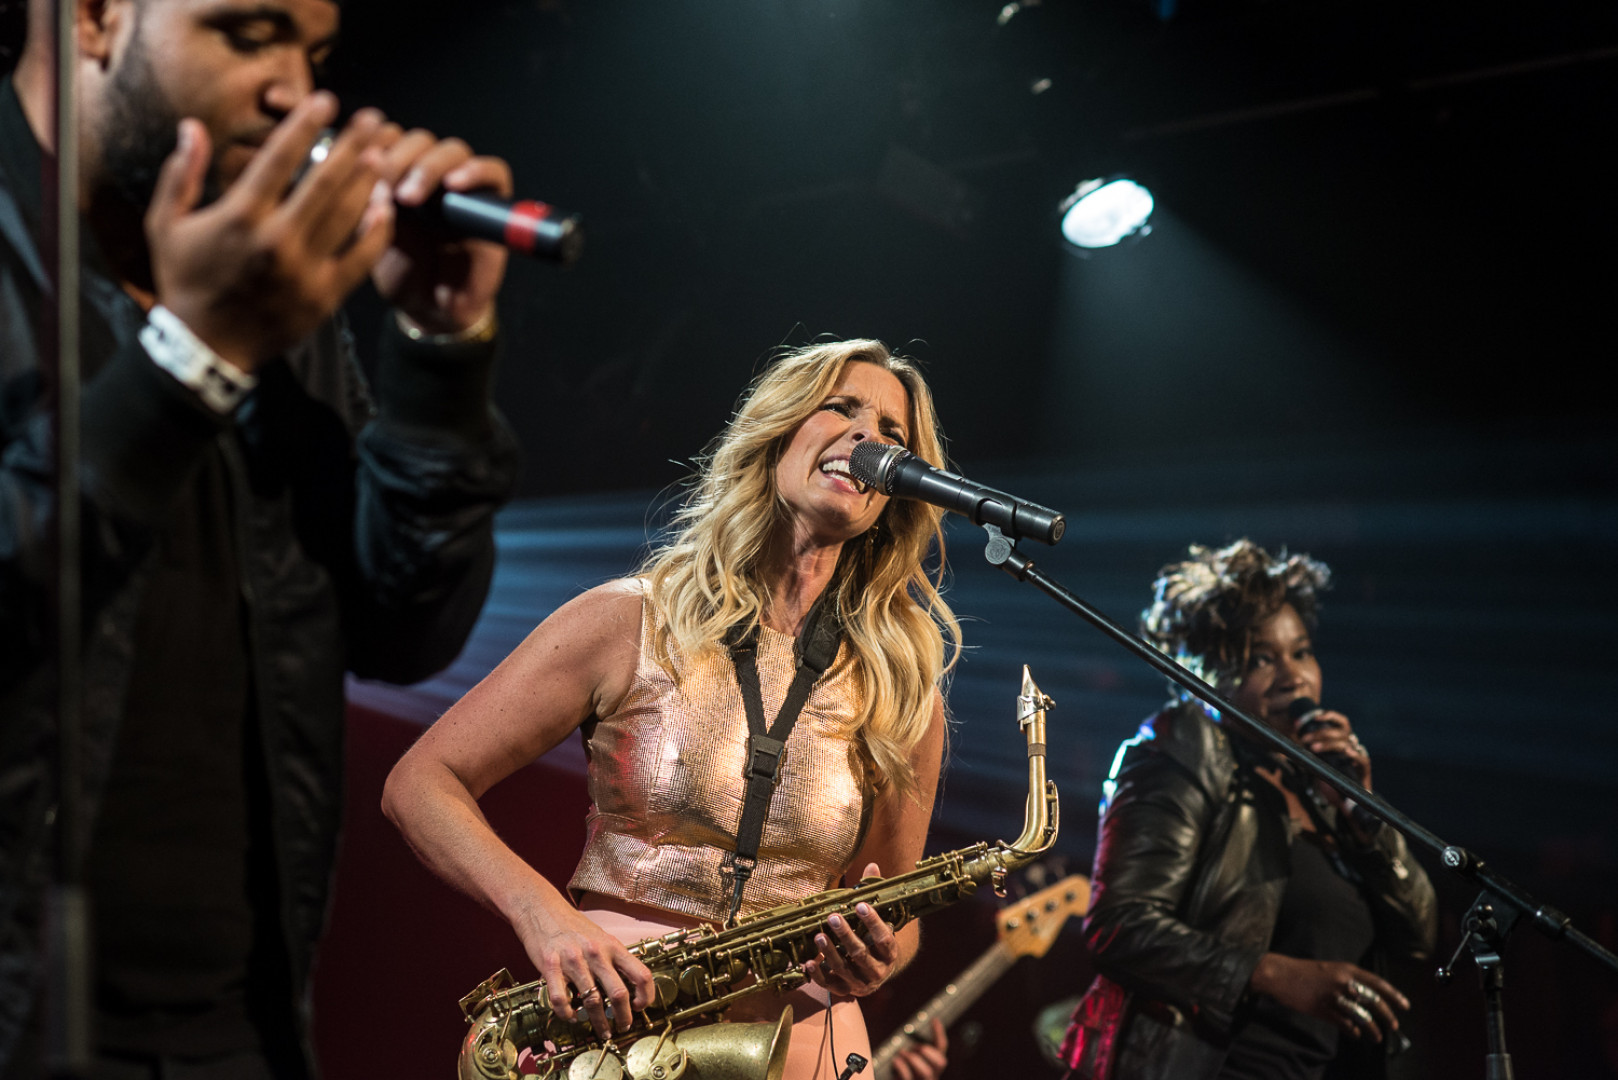 Scenic jazz variety: Candy Dulfer - A38 Ship